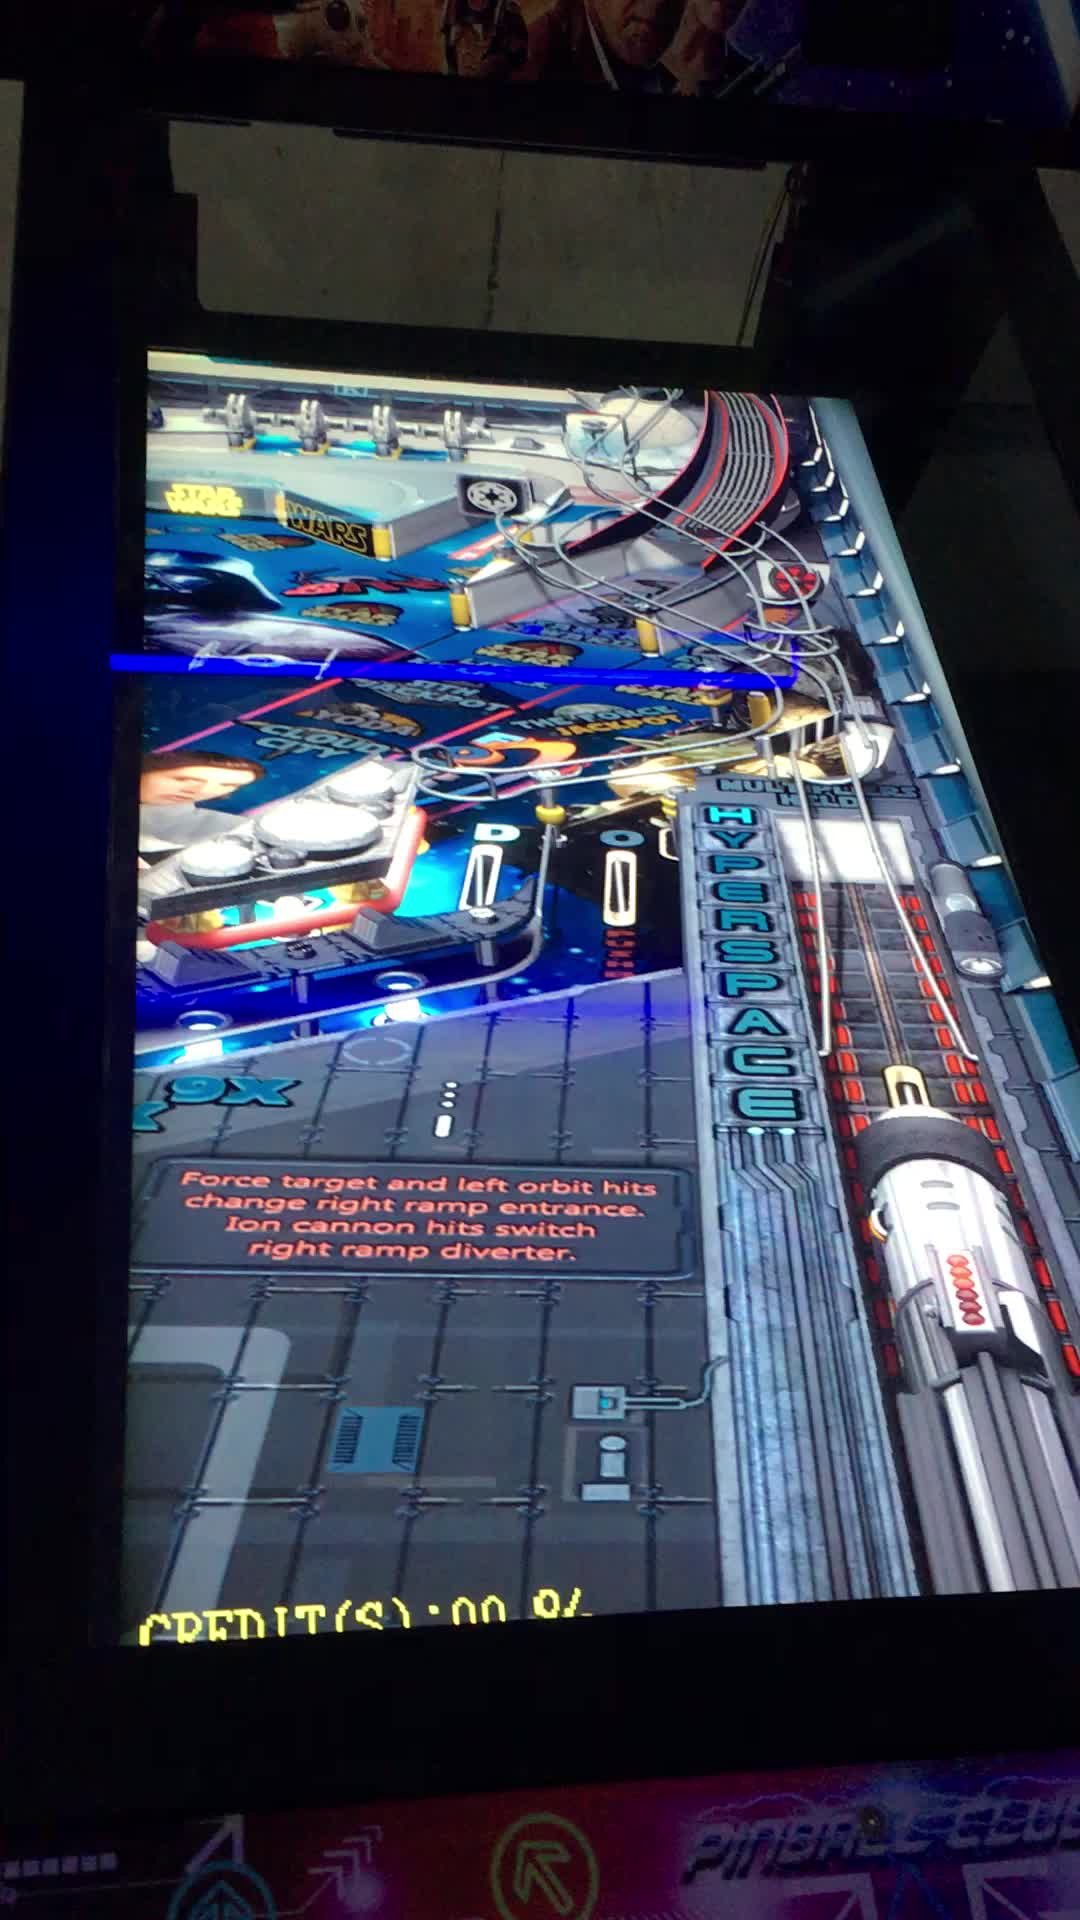 2 Screen Folding Virtual Pinball Machine with 60 pinball games